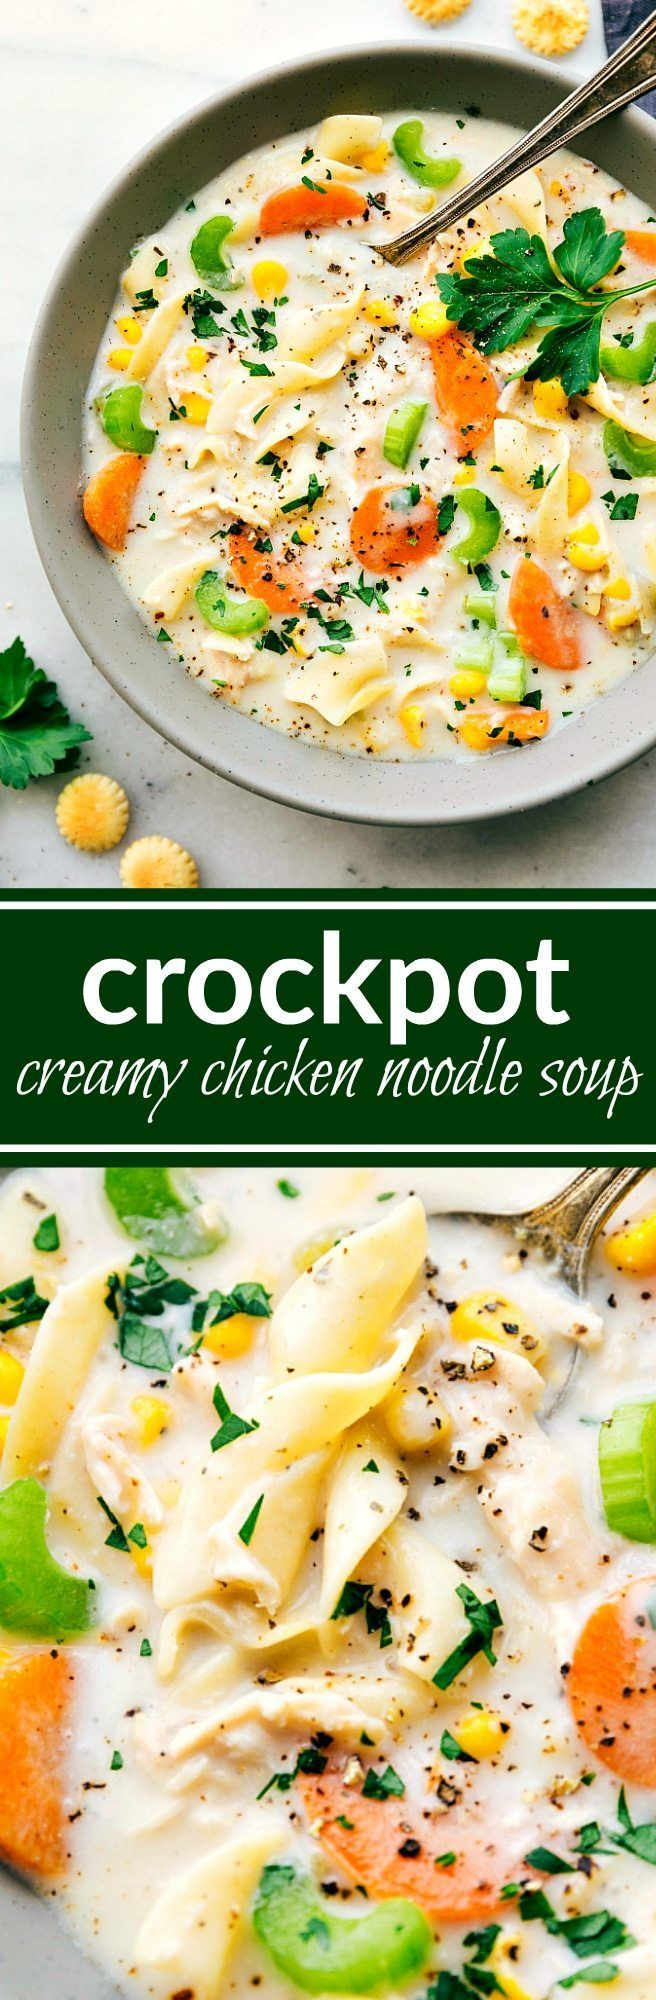 crockpot creamy chicken noodle soup packed with flavor